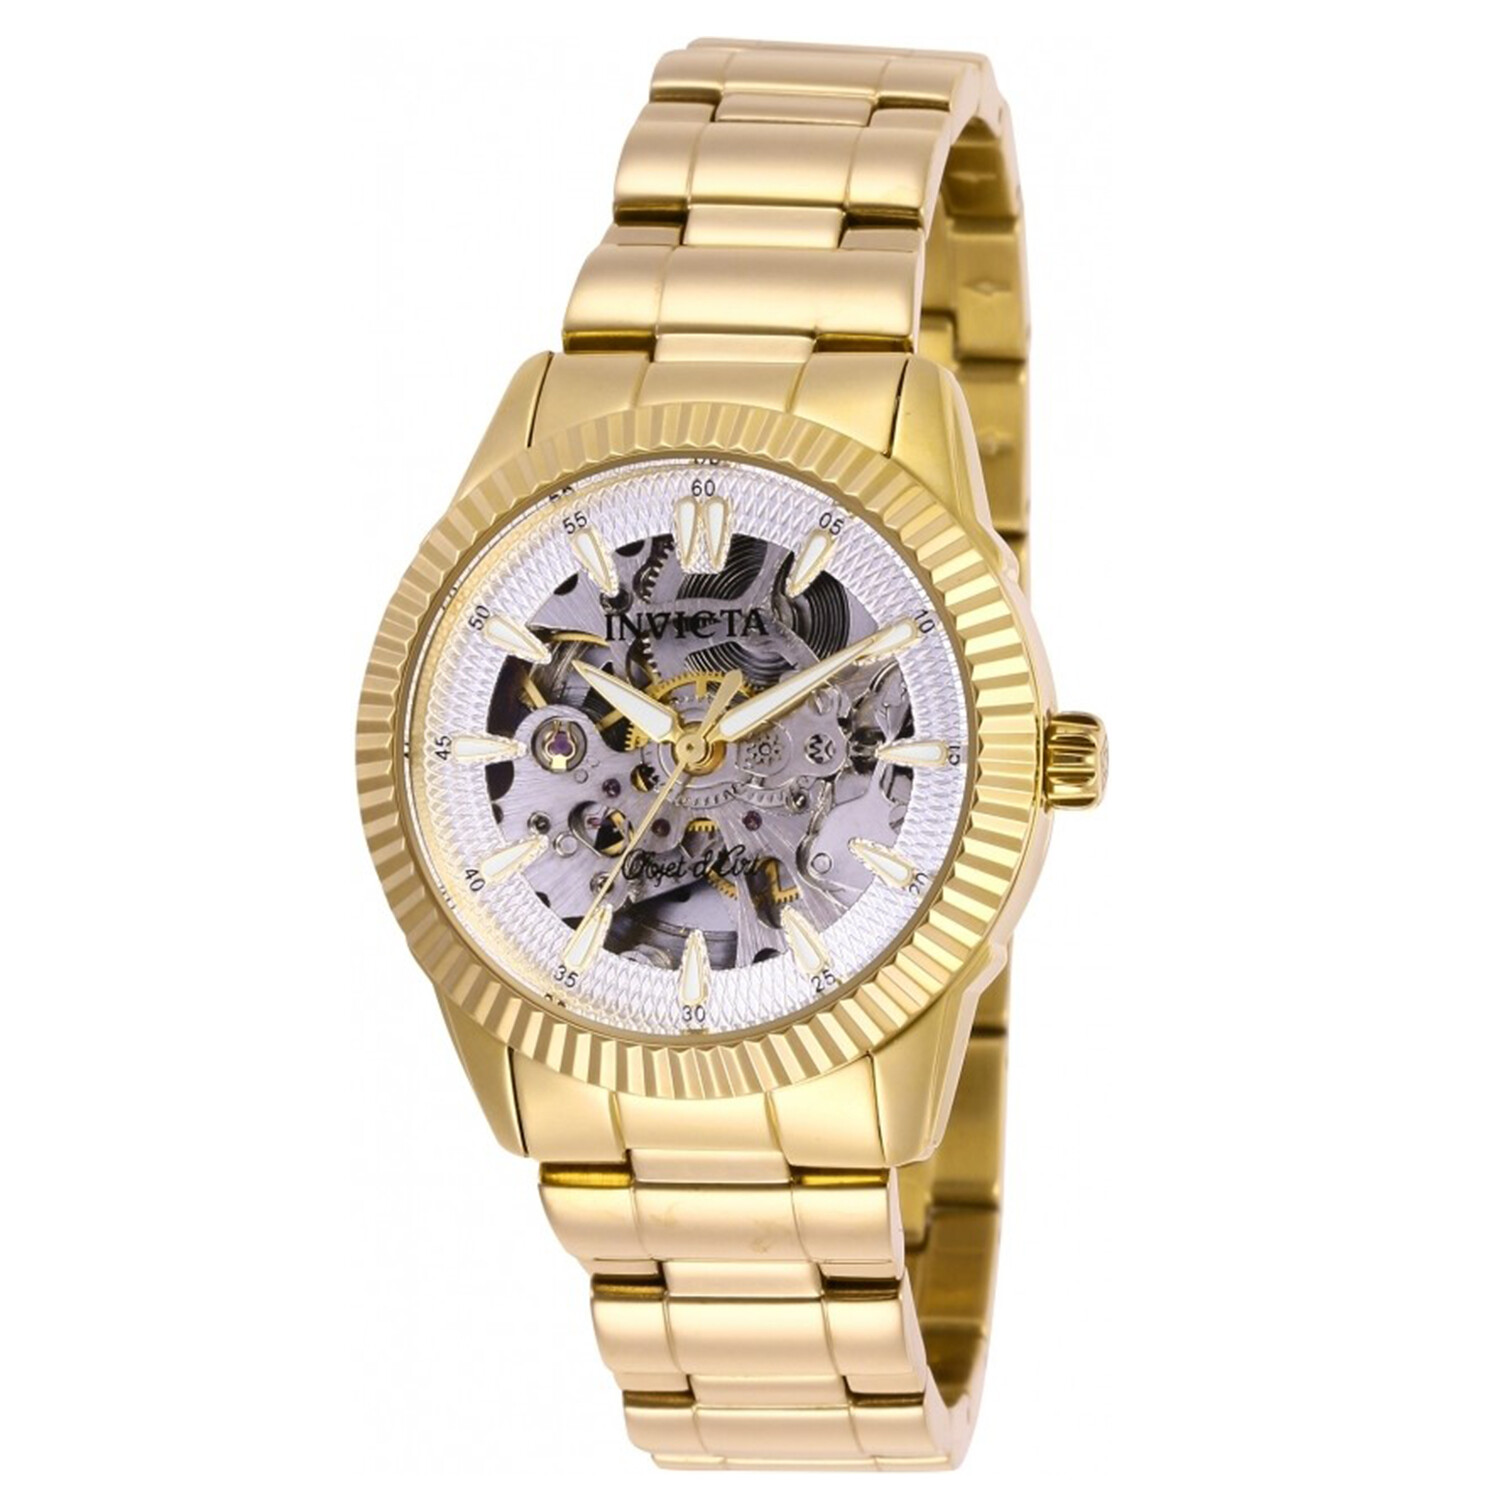 Invicta Women's Objet D Art 26363 Gold Stainless-Steel Hand Wind Fashion Watch